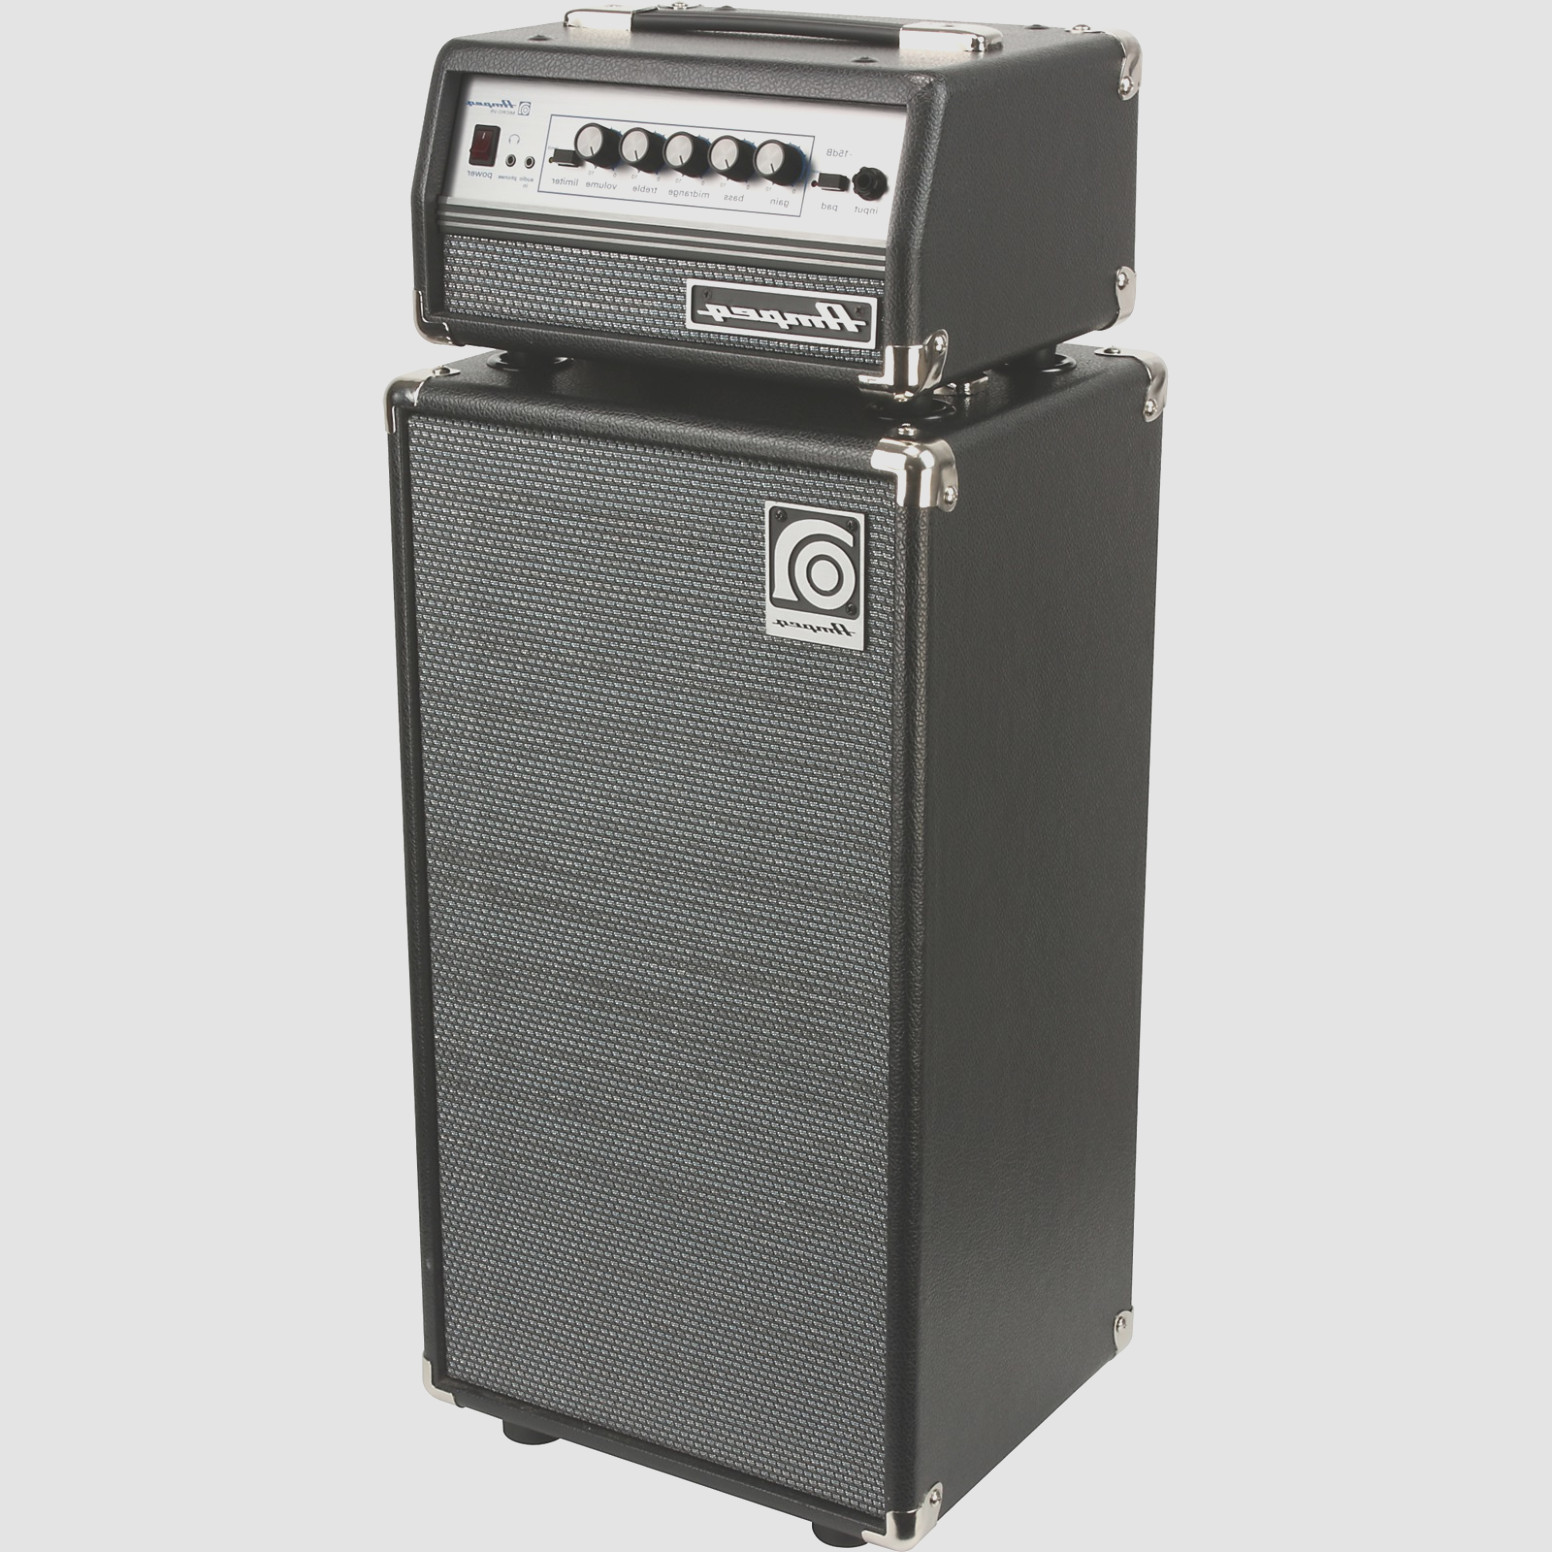 Ampeg Bass Head and Cabinet